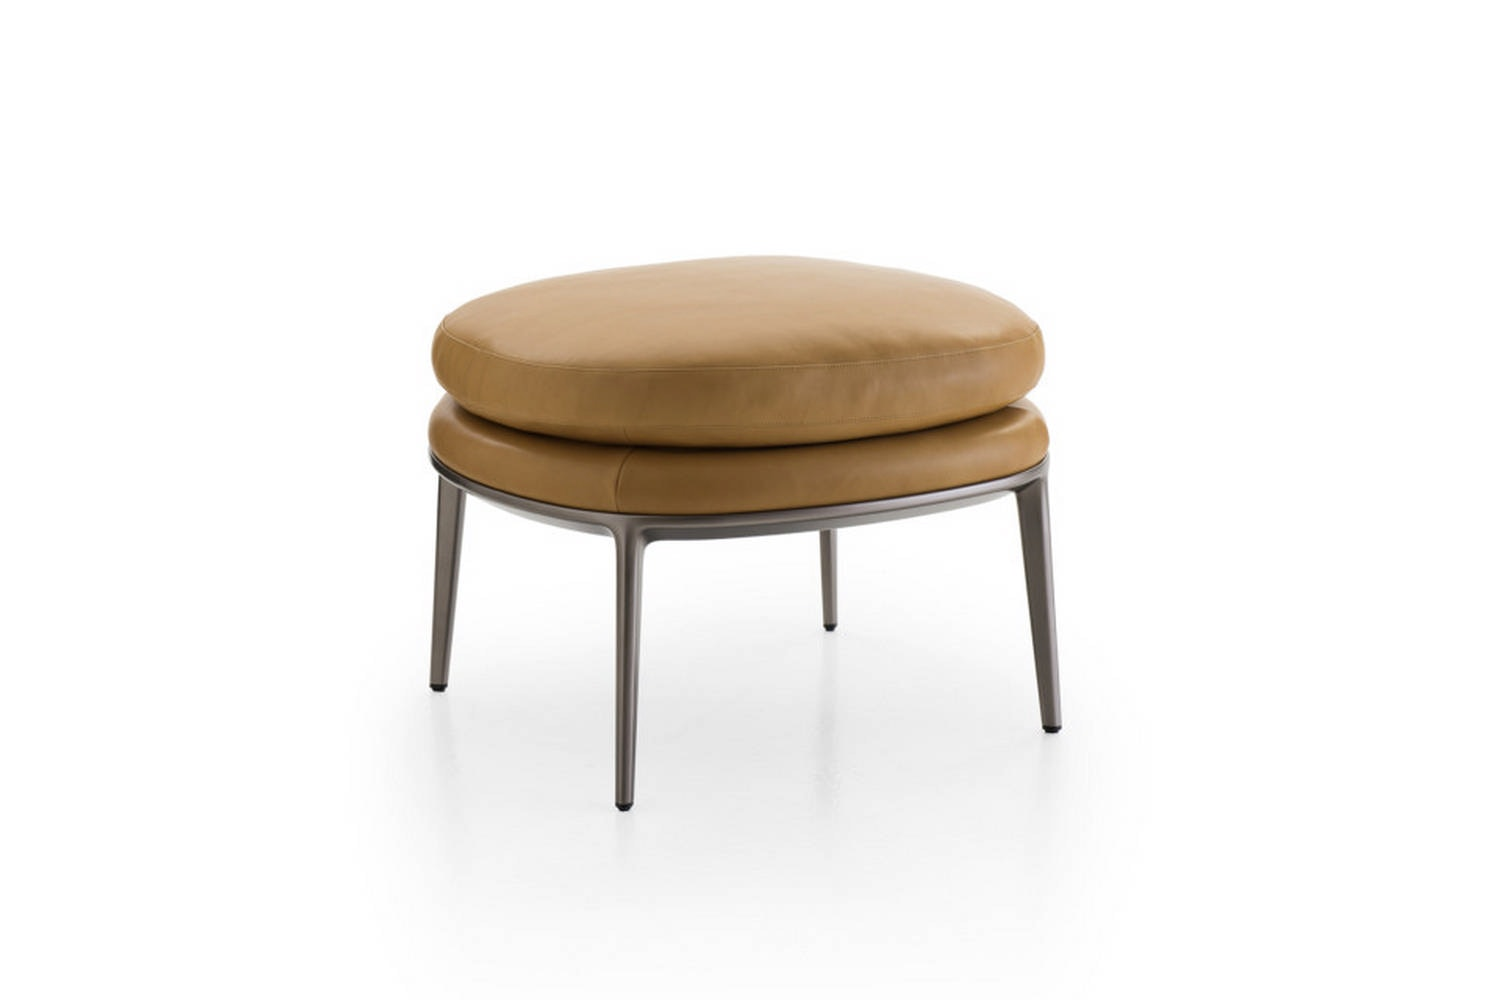 Caratos Ottoman by Antonio Citterio for Maxalto